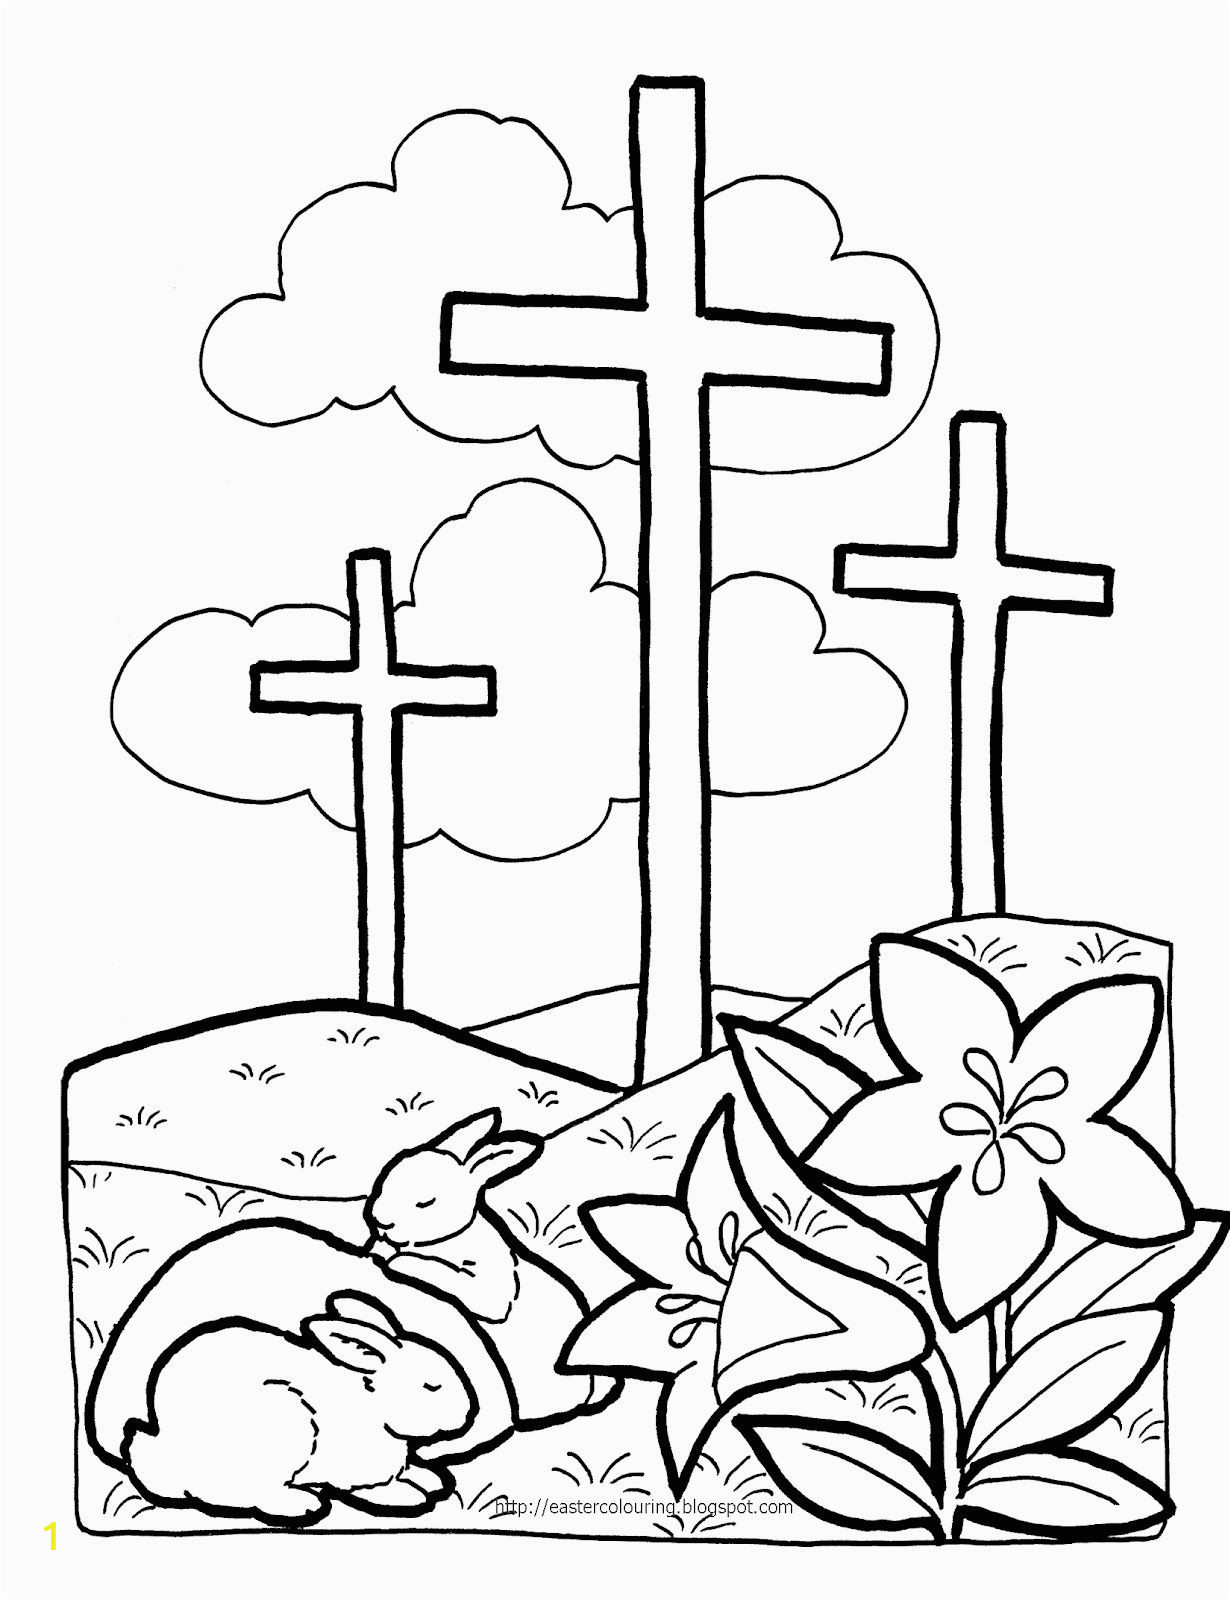 Coloring Pages for Holy Week Free Printable Christian Coloring Pages for Kids